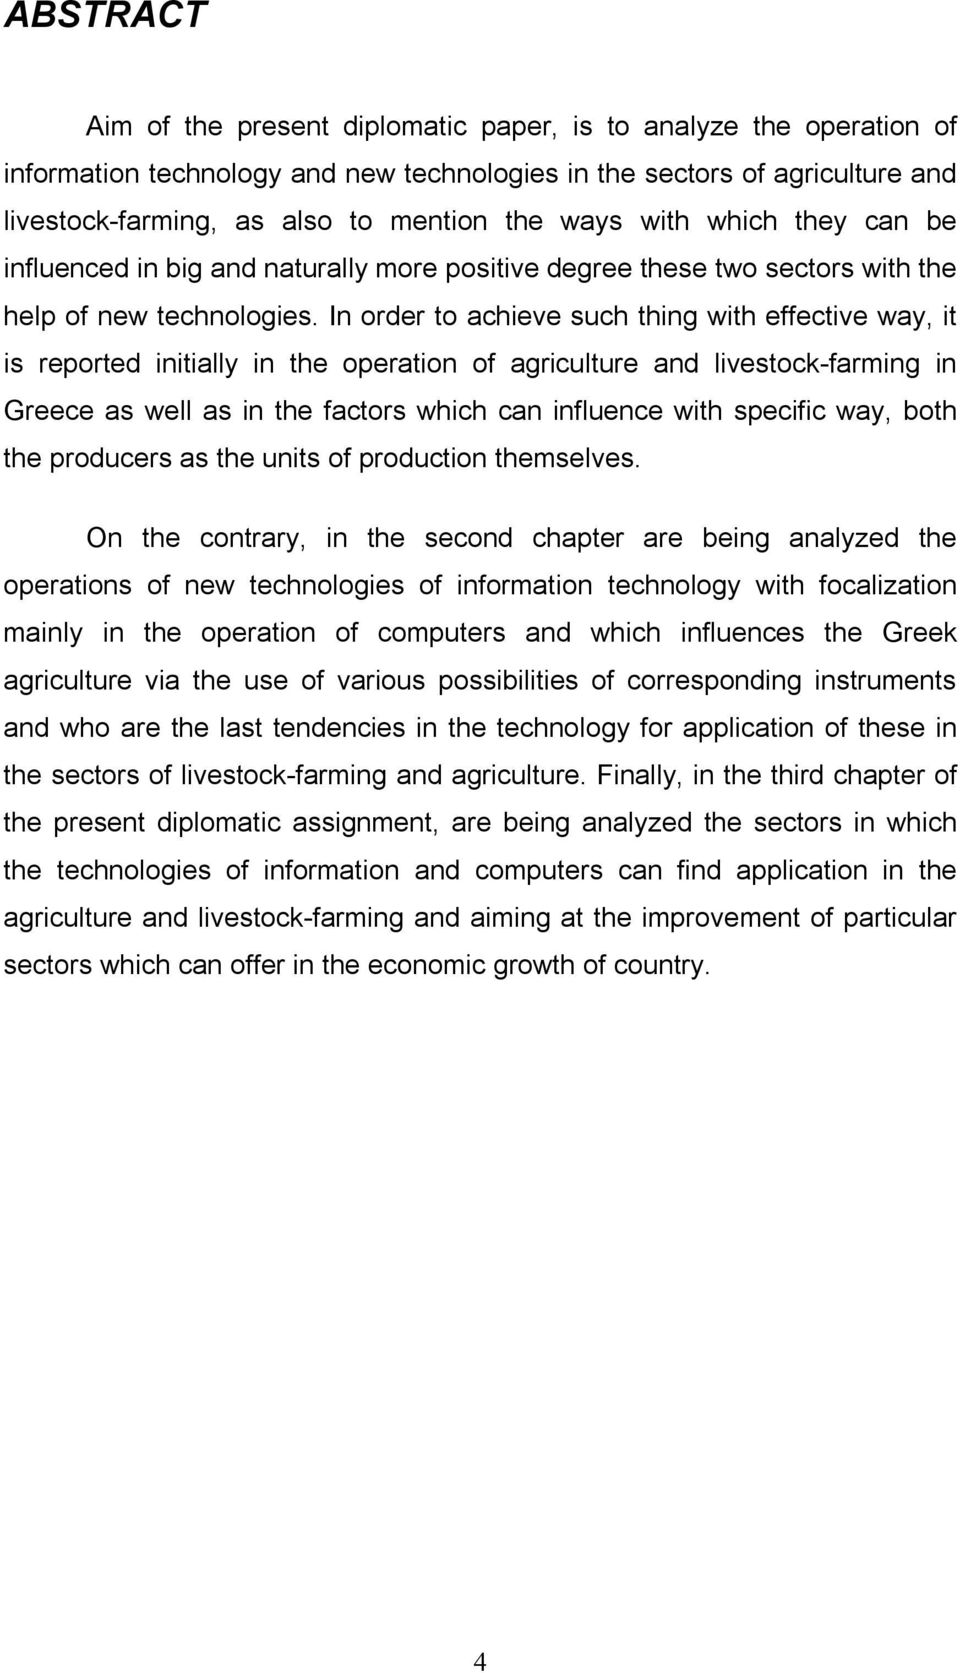 In order to achieve such thing with effective way, it is reported initially in the operation of agriculture and livestock-farming in Greece as well as in the factors which can influence with specific